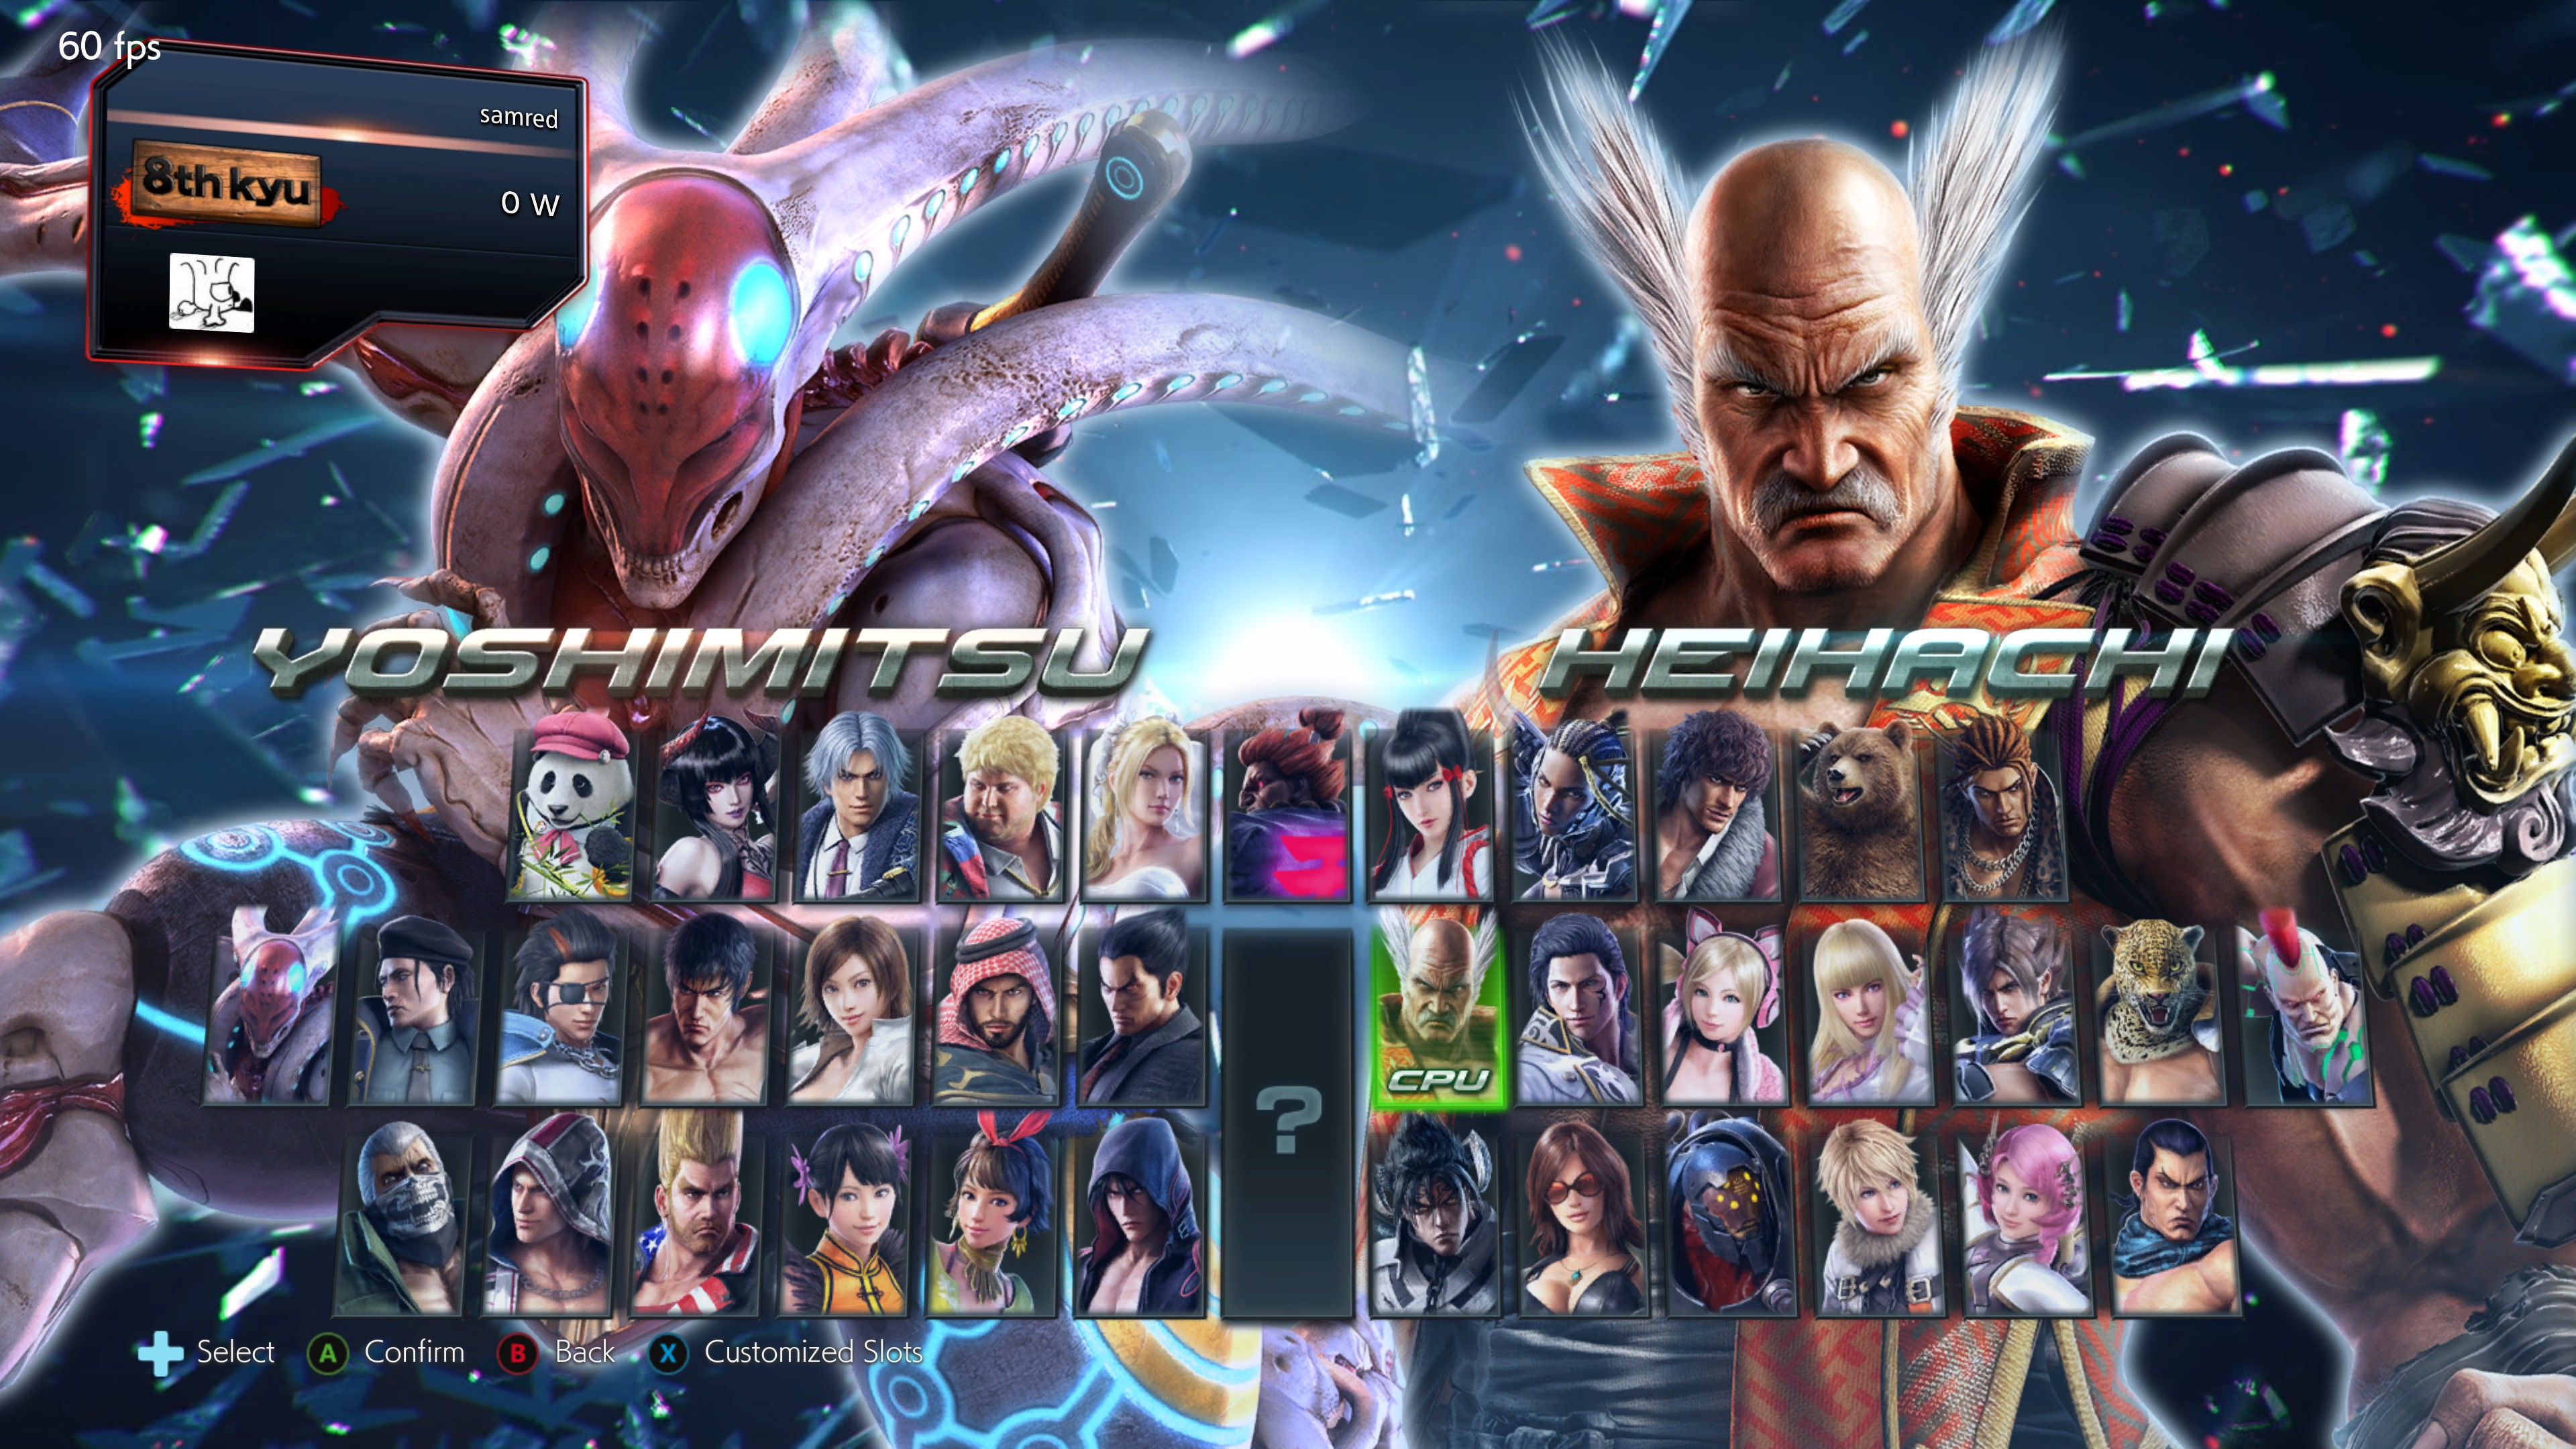 <em>Tekken 7</em>'s roster, including the day-one DLC character Eliza.